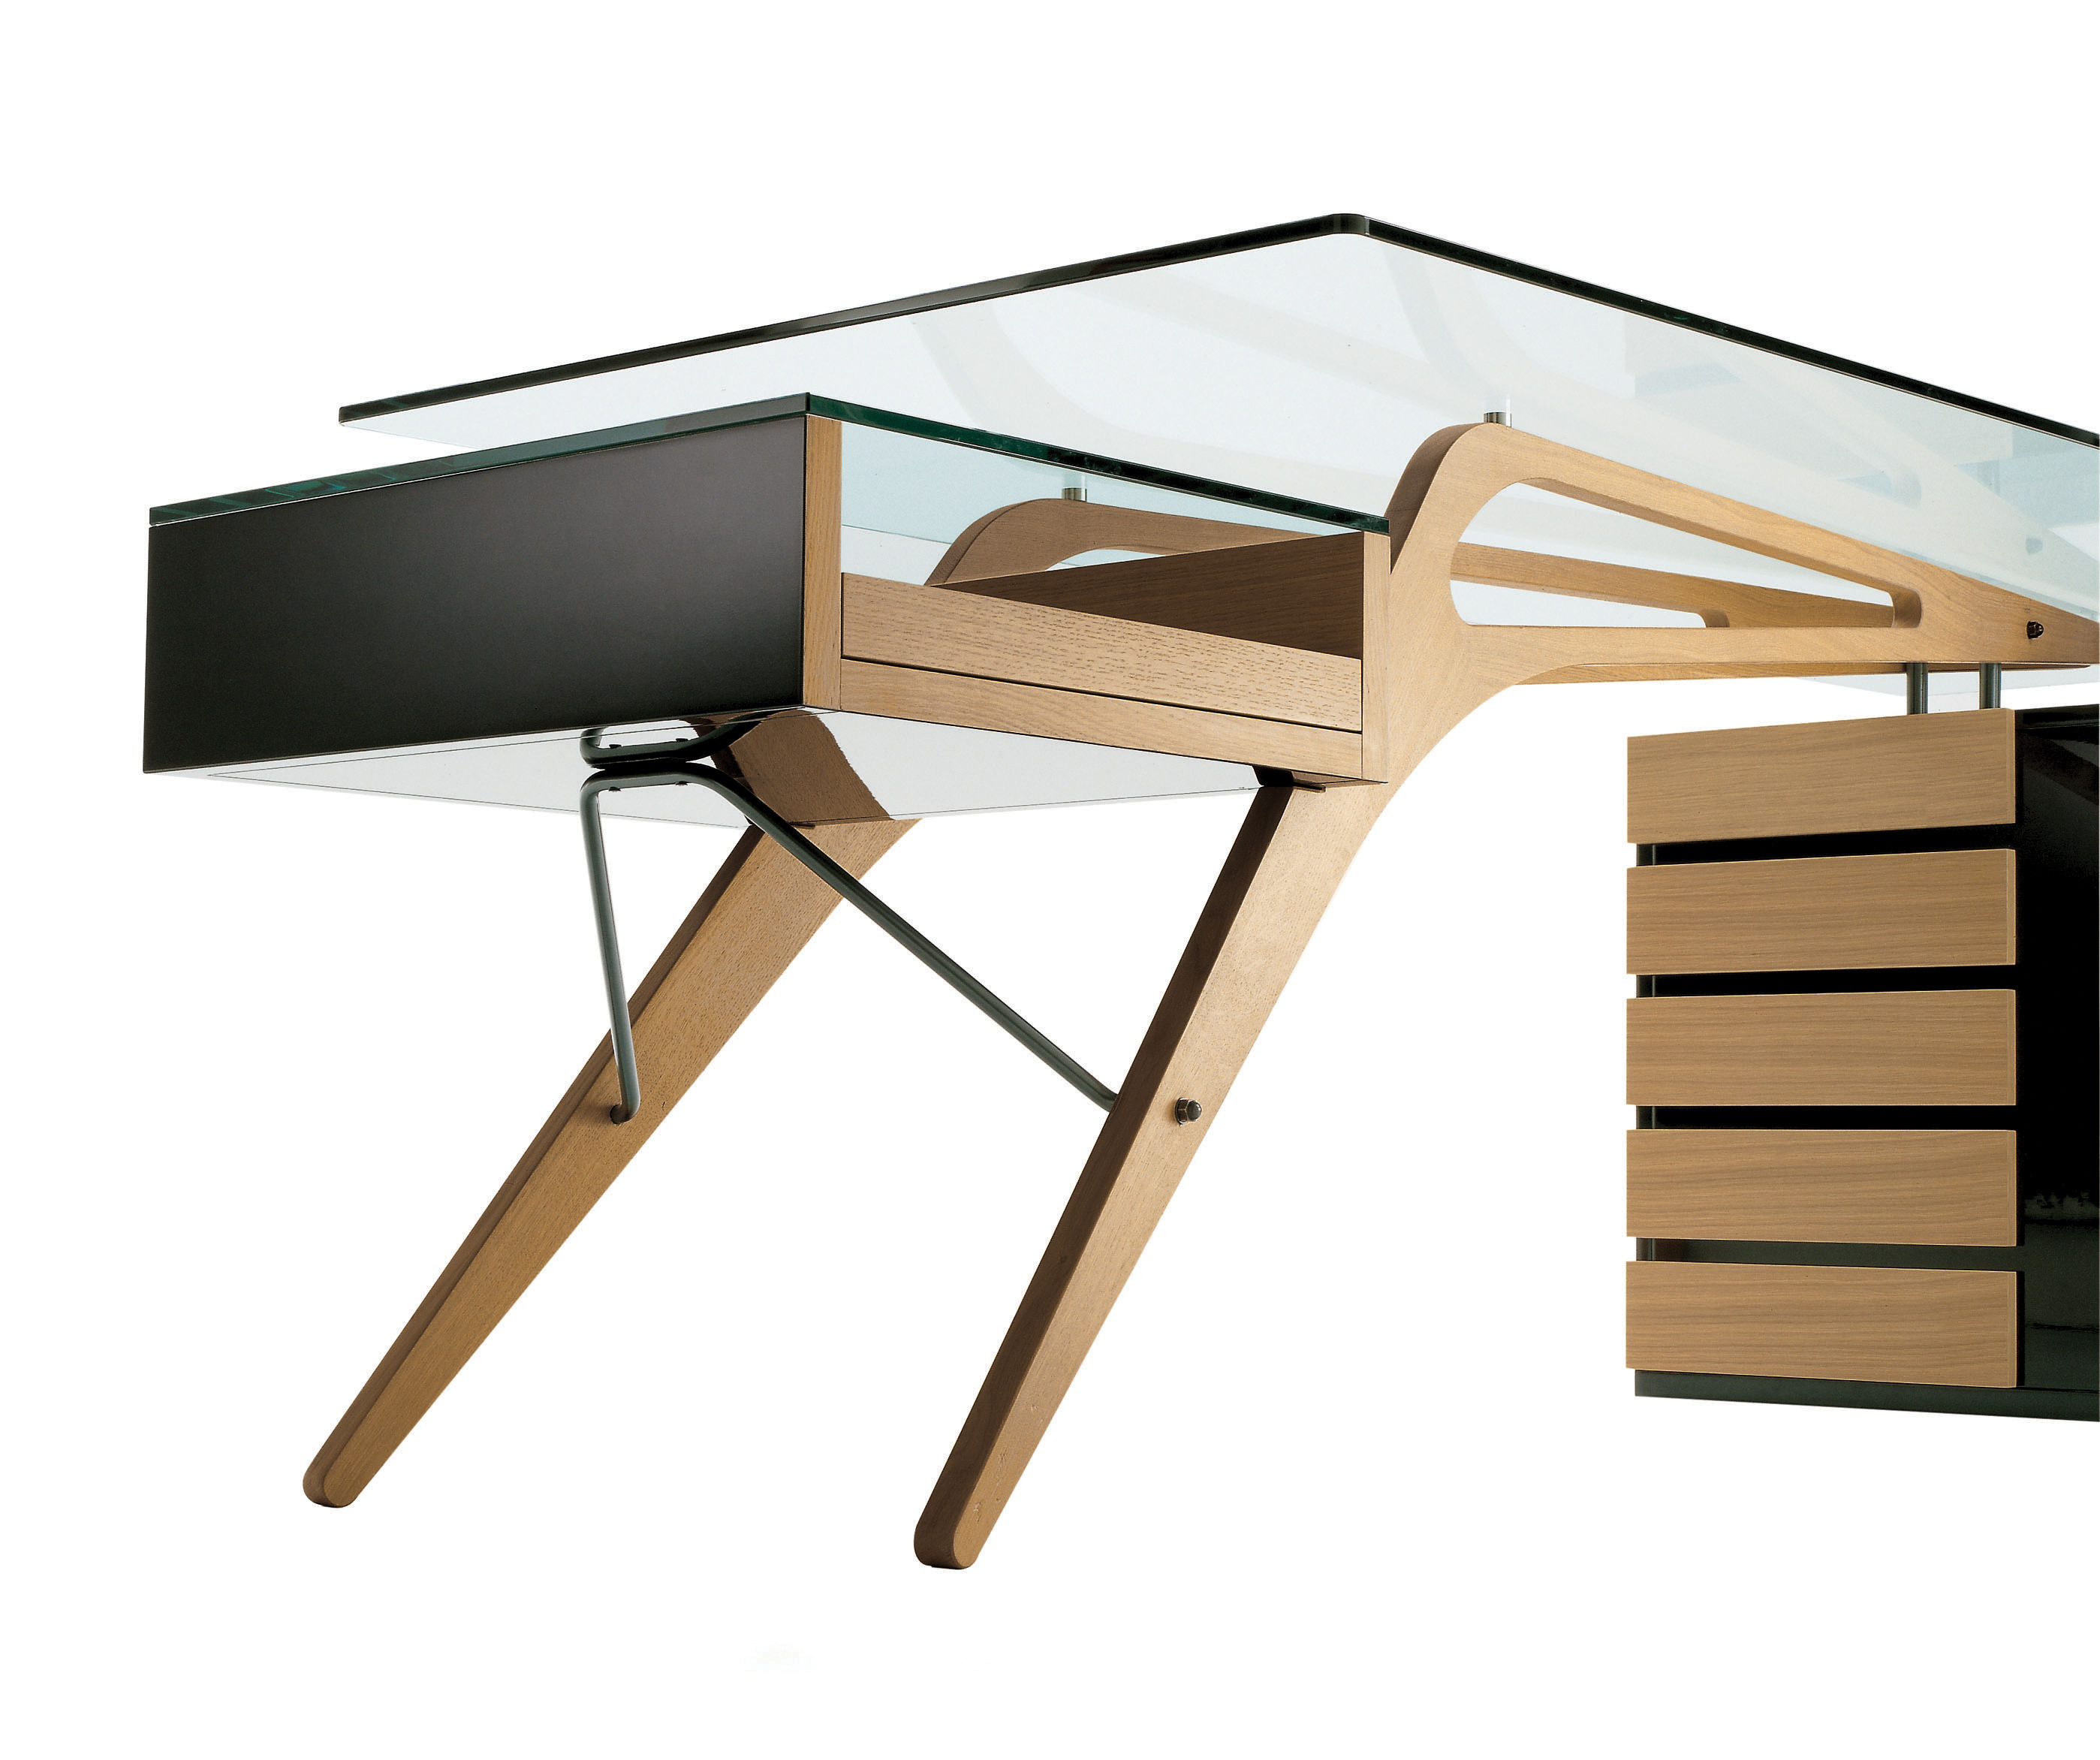 bureau cavour bois verre 247 x 90 cm ch ne naturel noir zanotta. Black Bedroom Furniture Sets. Home Design Ideas